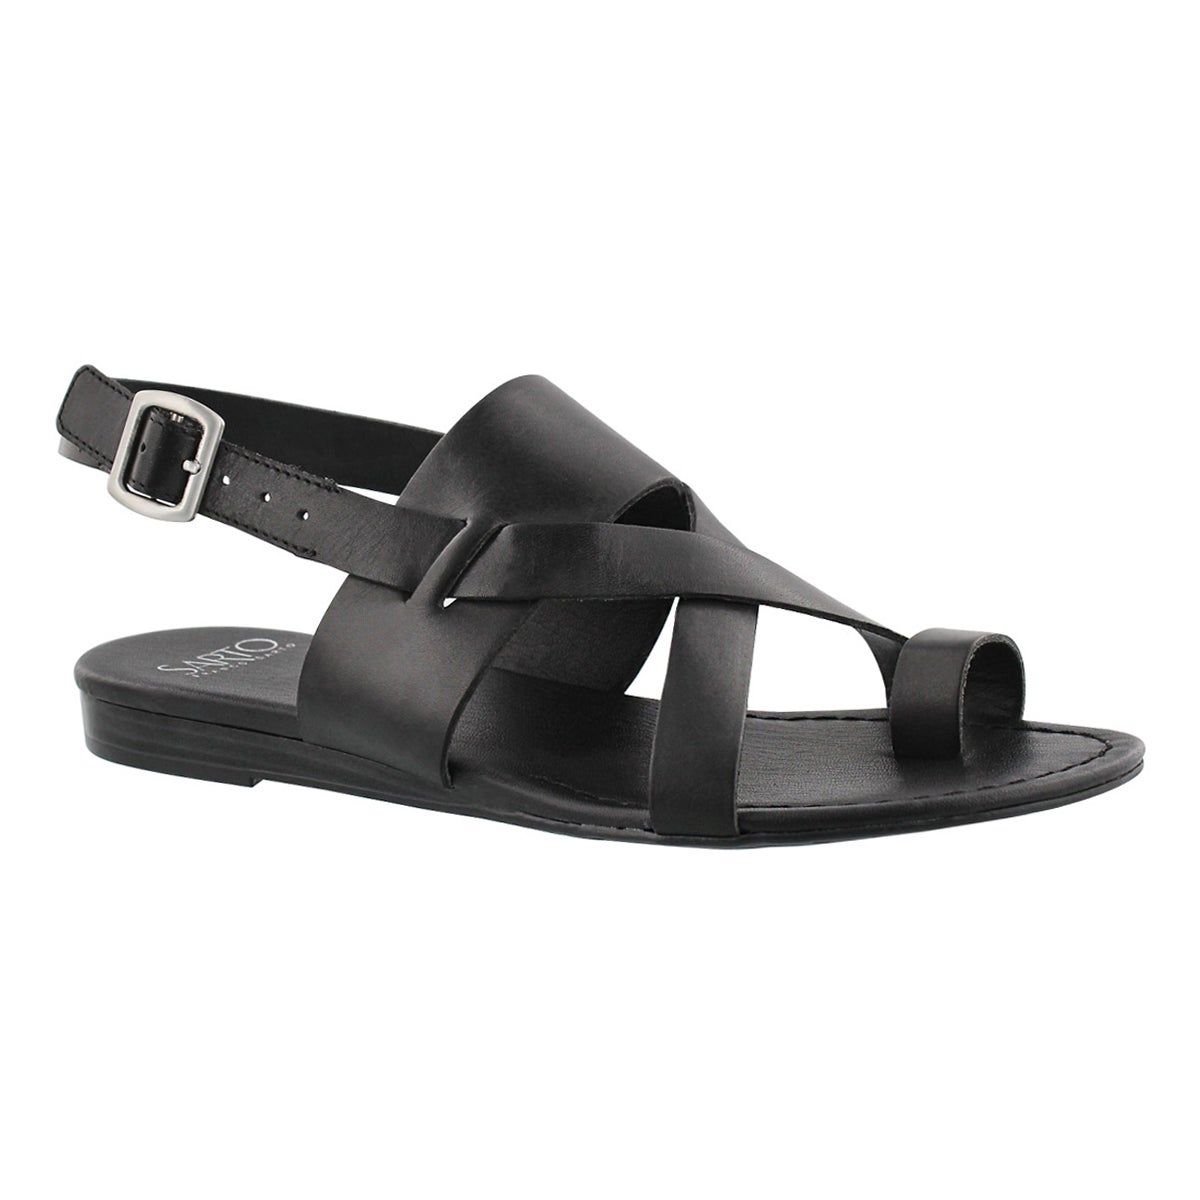 Women's GIA black toe wrap casual sandals